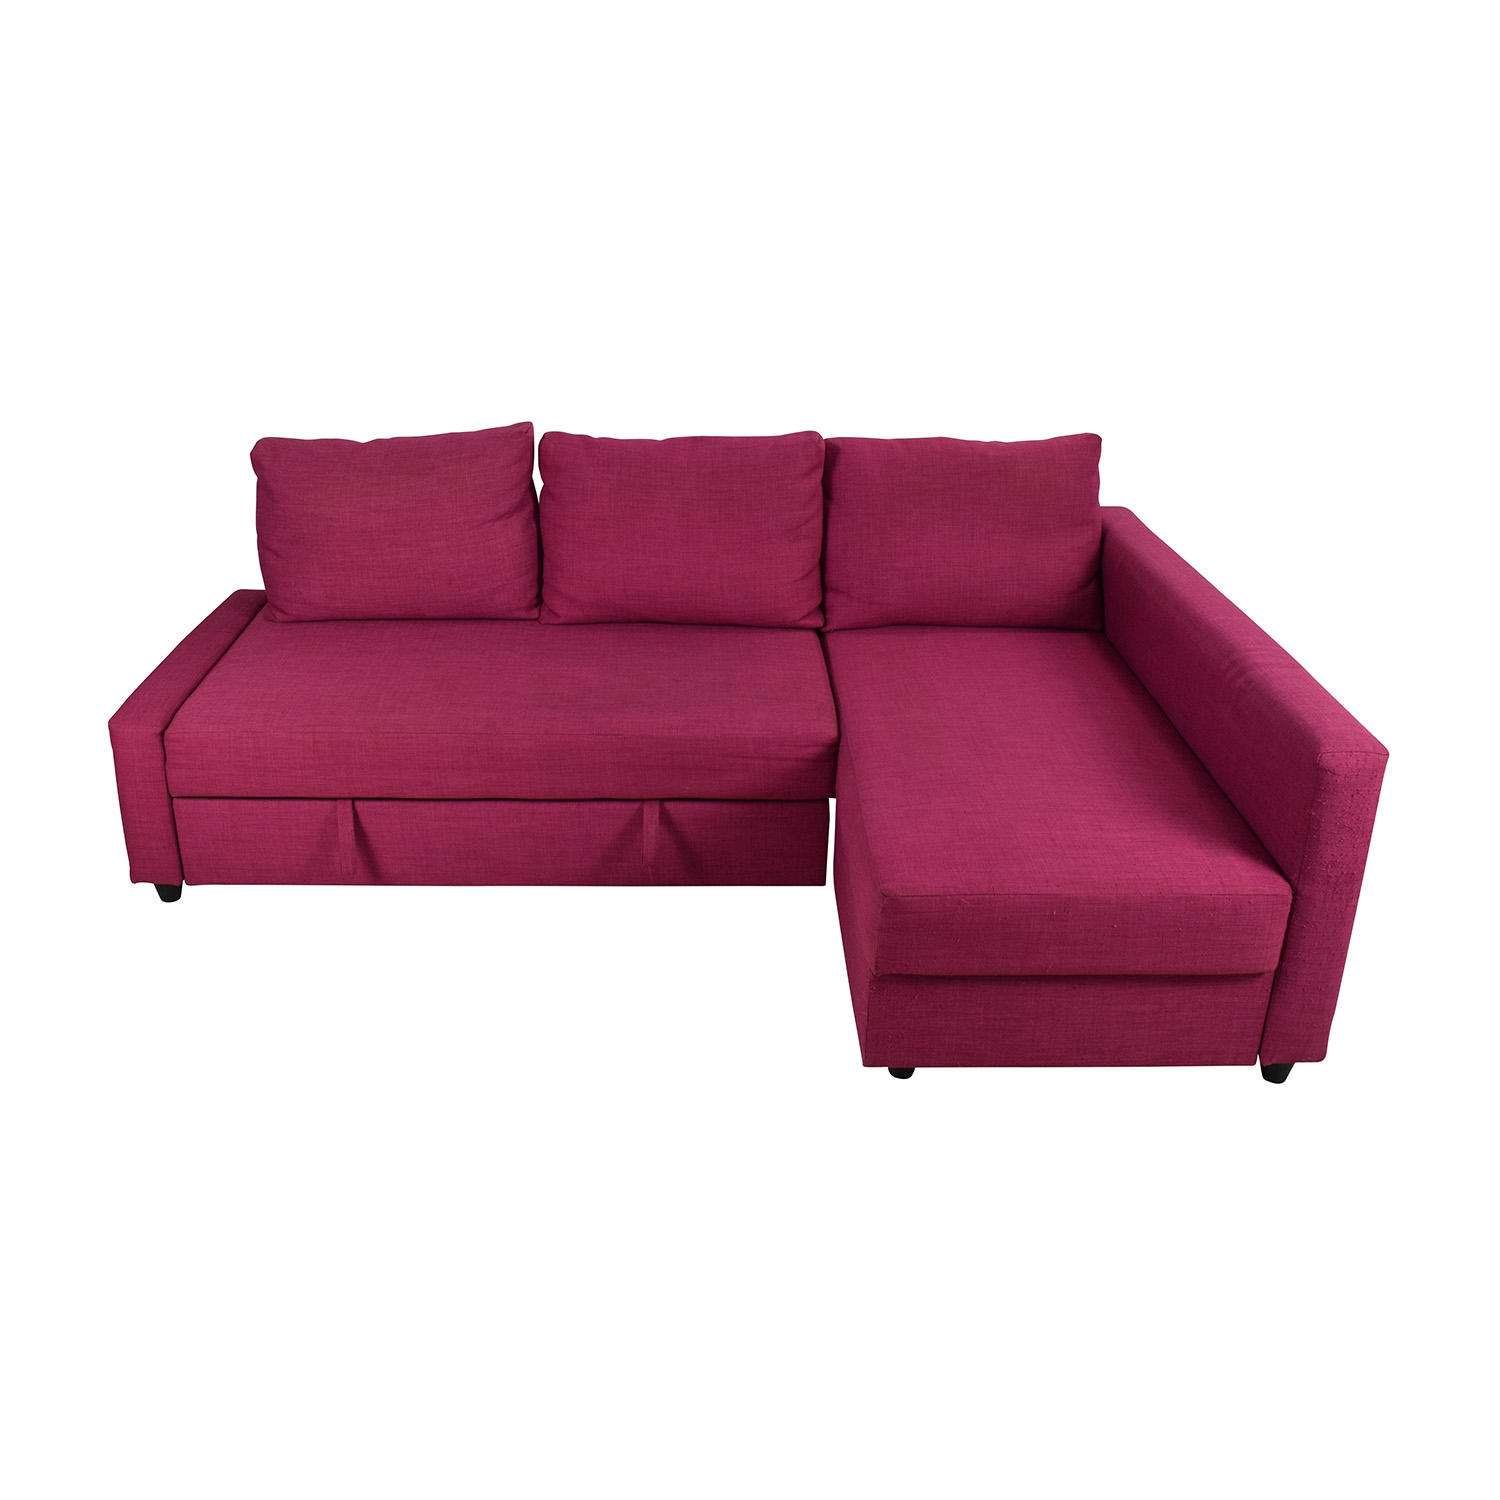 buy ikea friheten pink sleeper sofa ikea sectionals